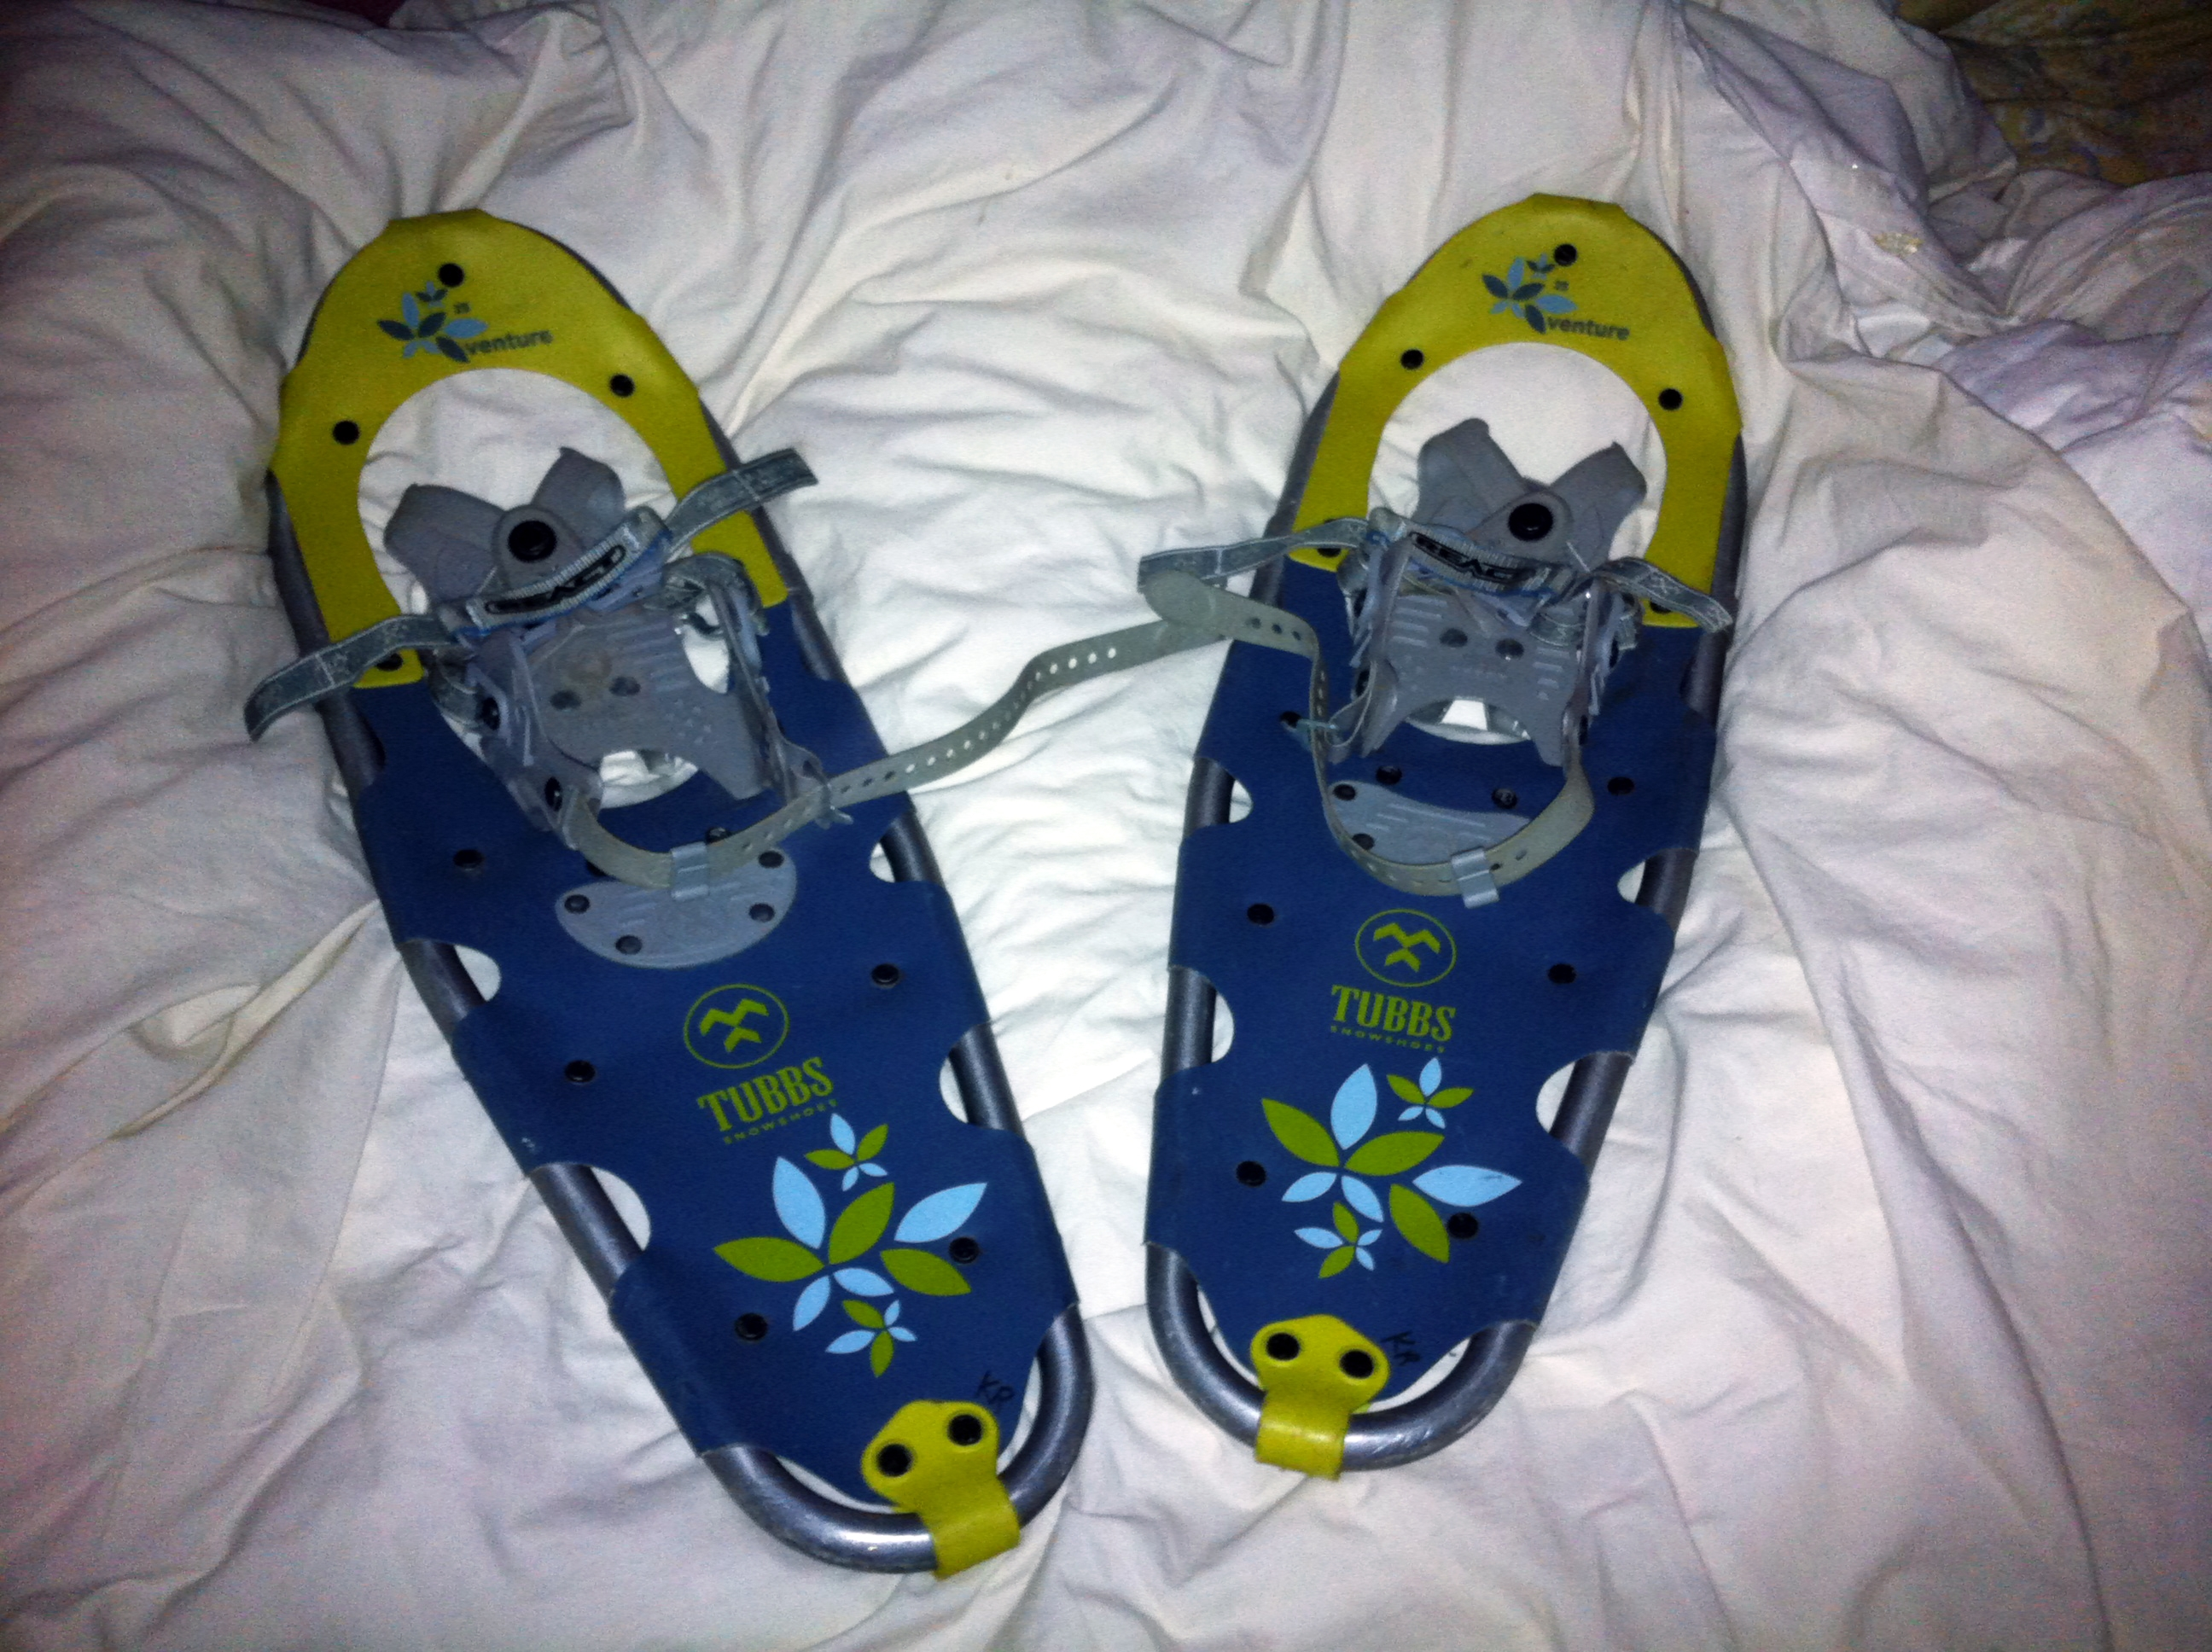 These snowshoes shall bear me across the snowy frozen wastes of the Desolation Wilderness this coming weekend, else come to utter ruin in the attempt.  (photo by D. Speredelozzi)